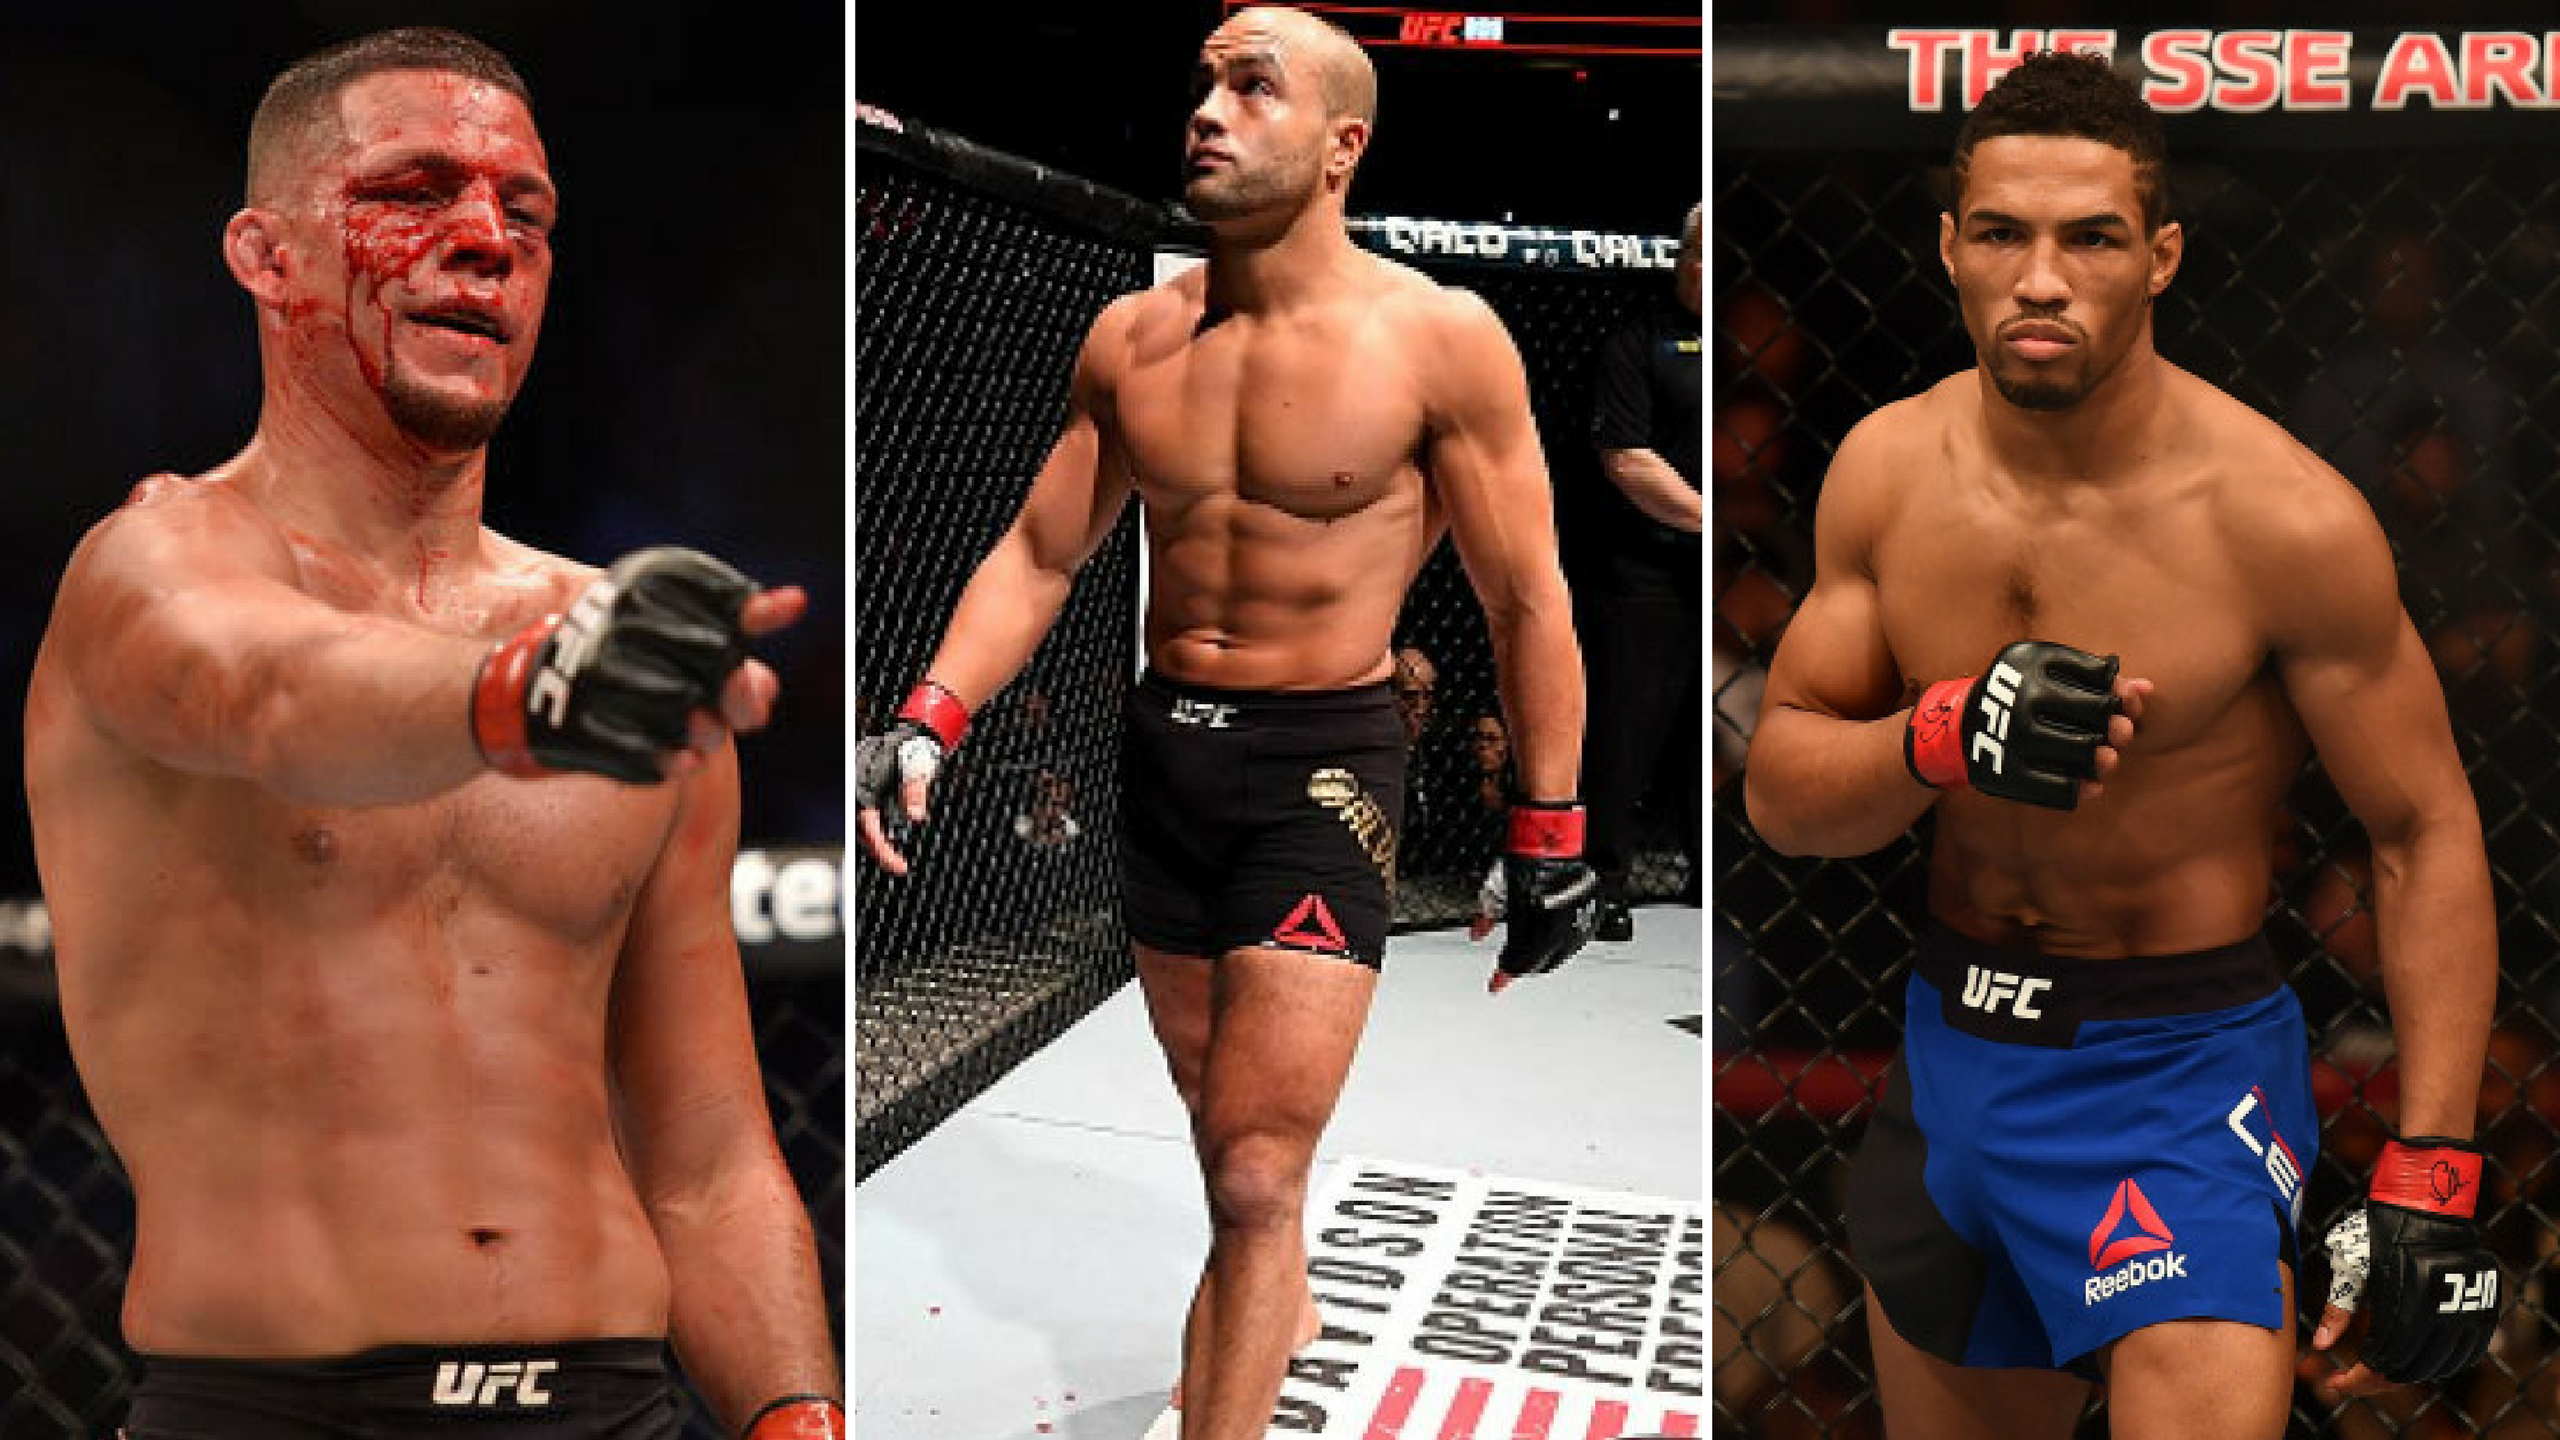 Eddie Alvarez and Kevin Lee reply to Nate Diaz's call out - Nate Diaz